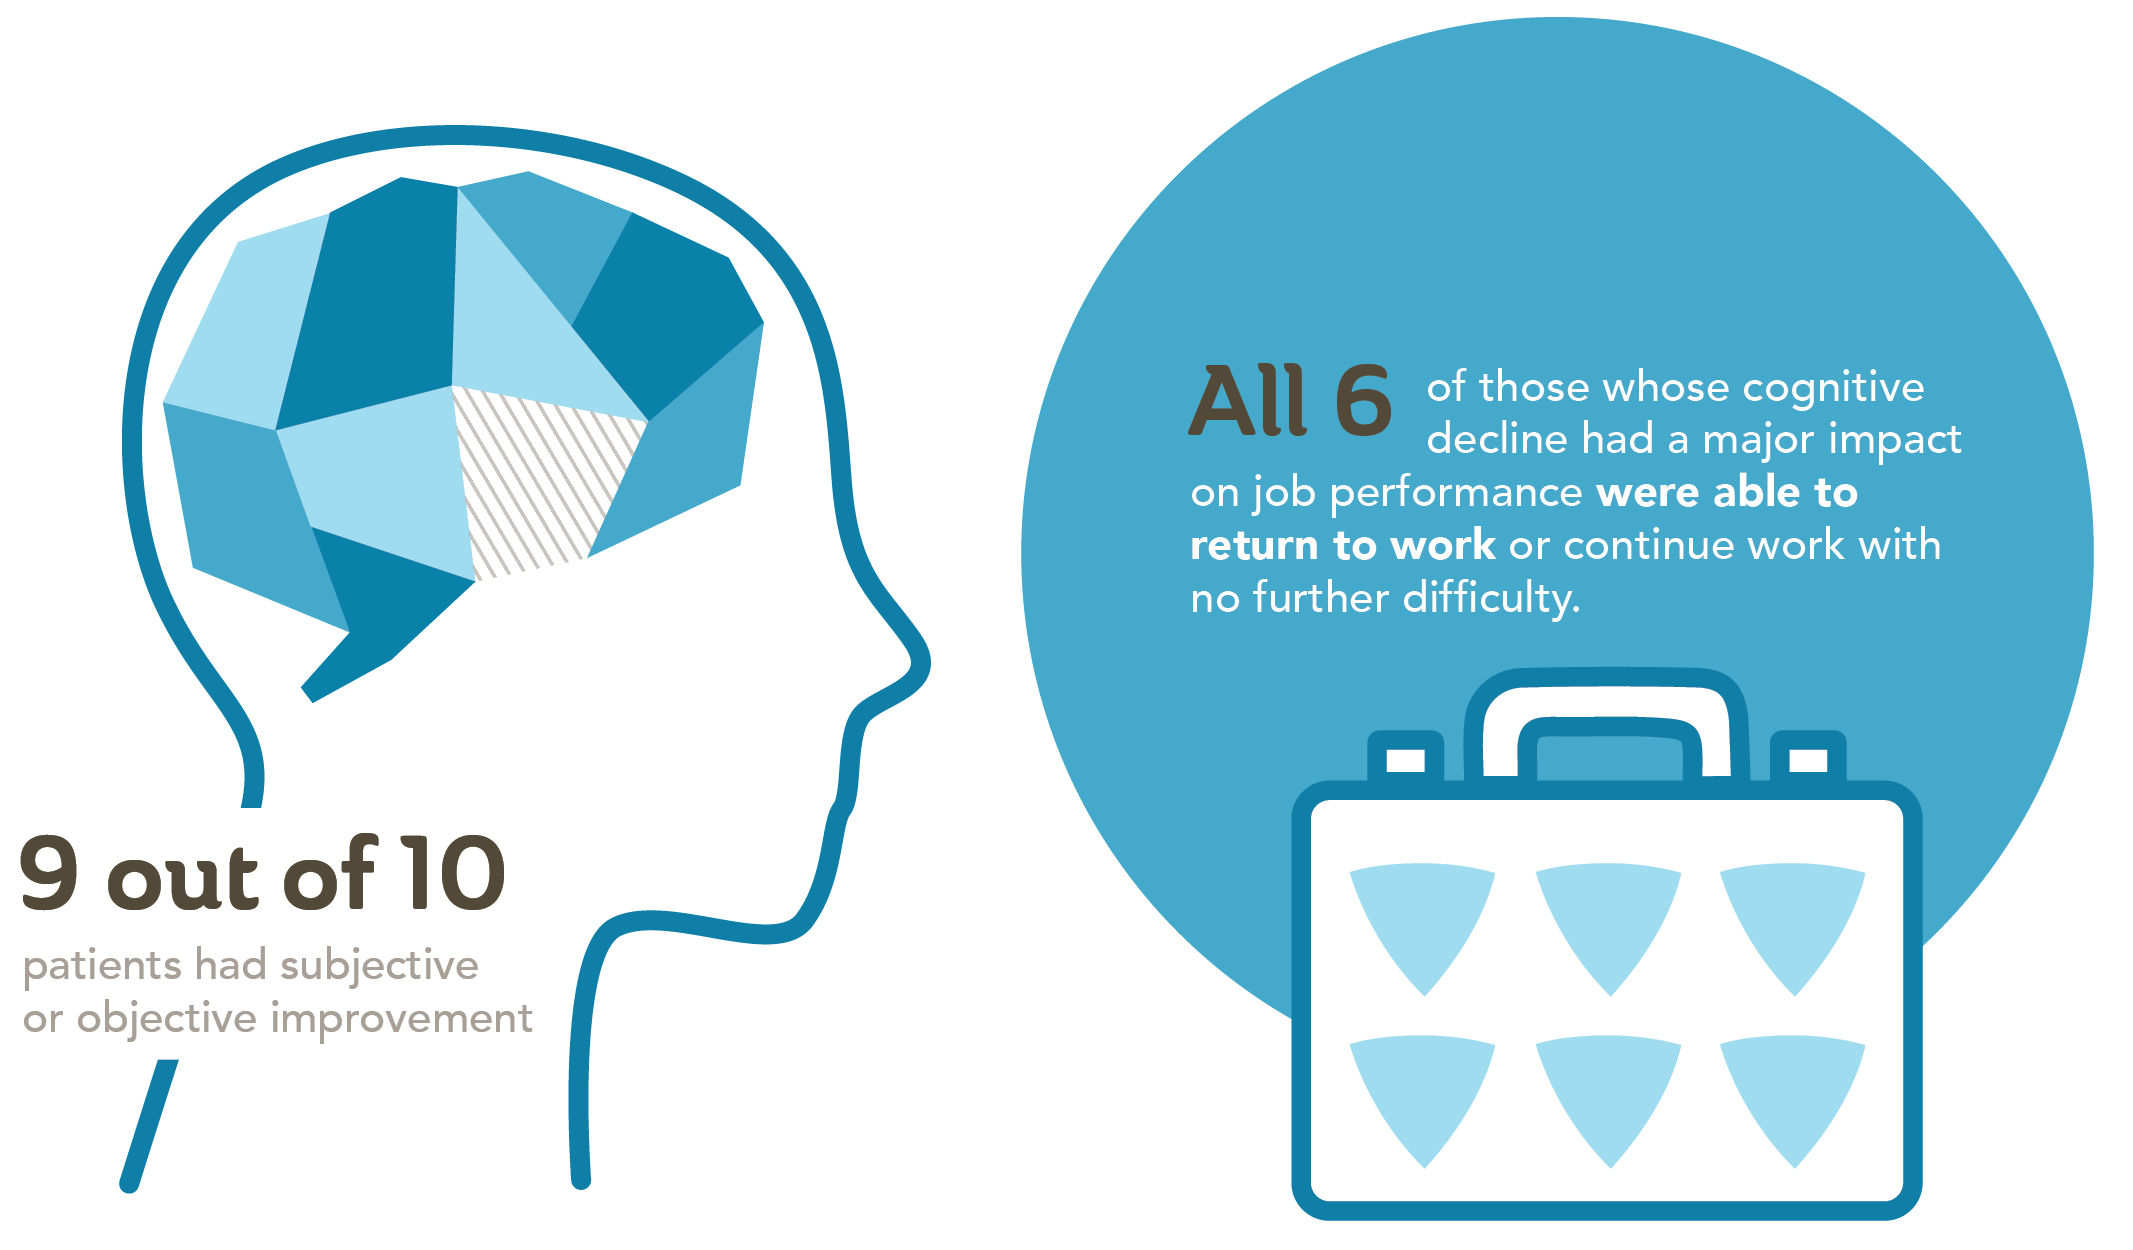 Alzheimer's study results infographic